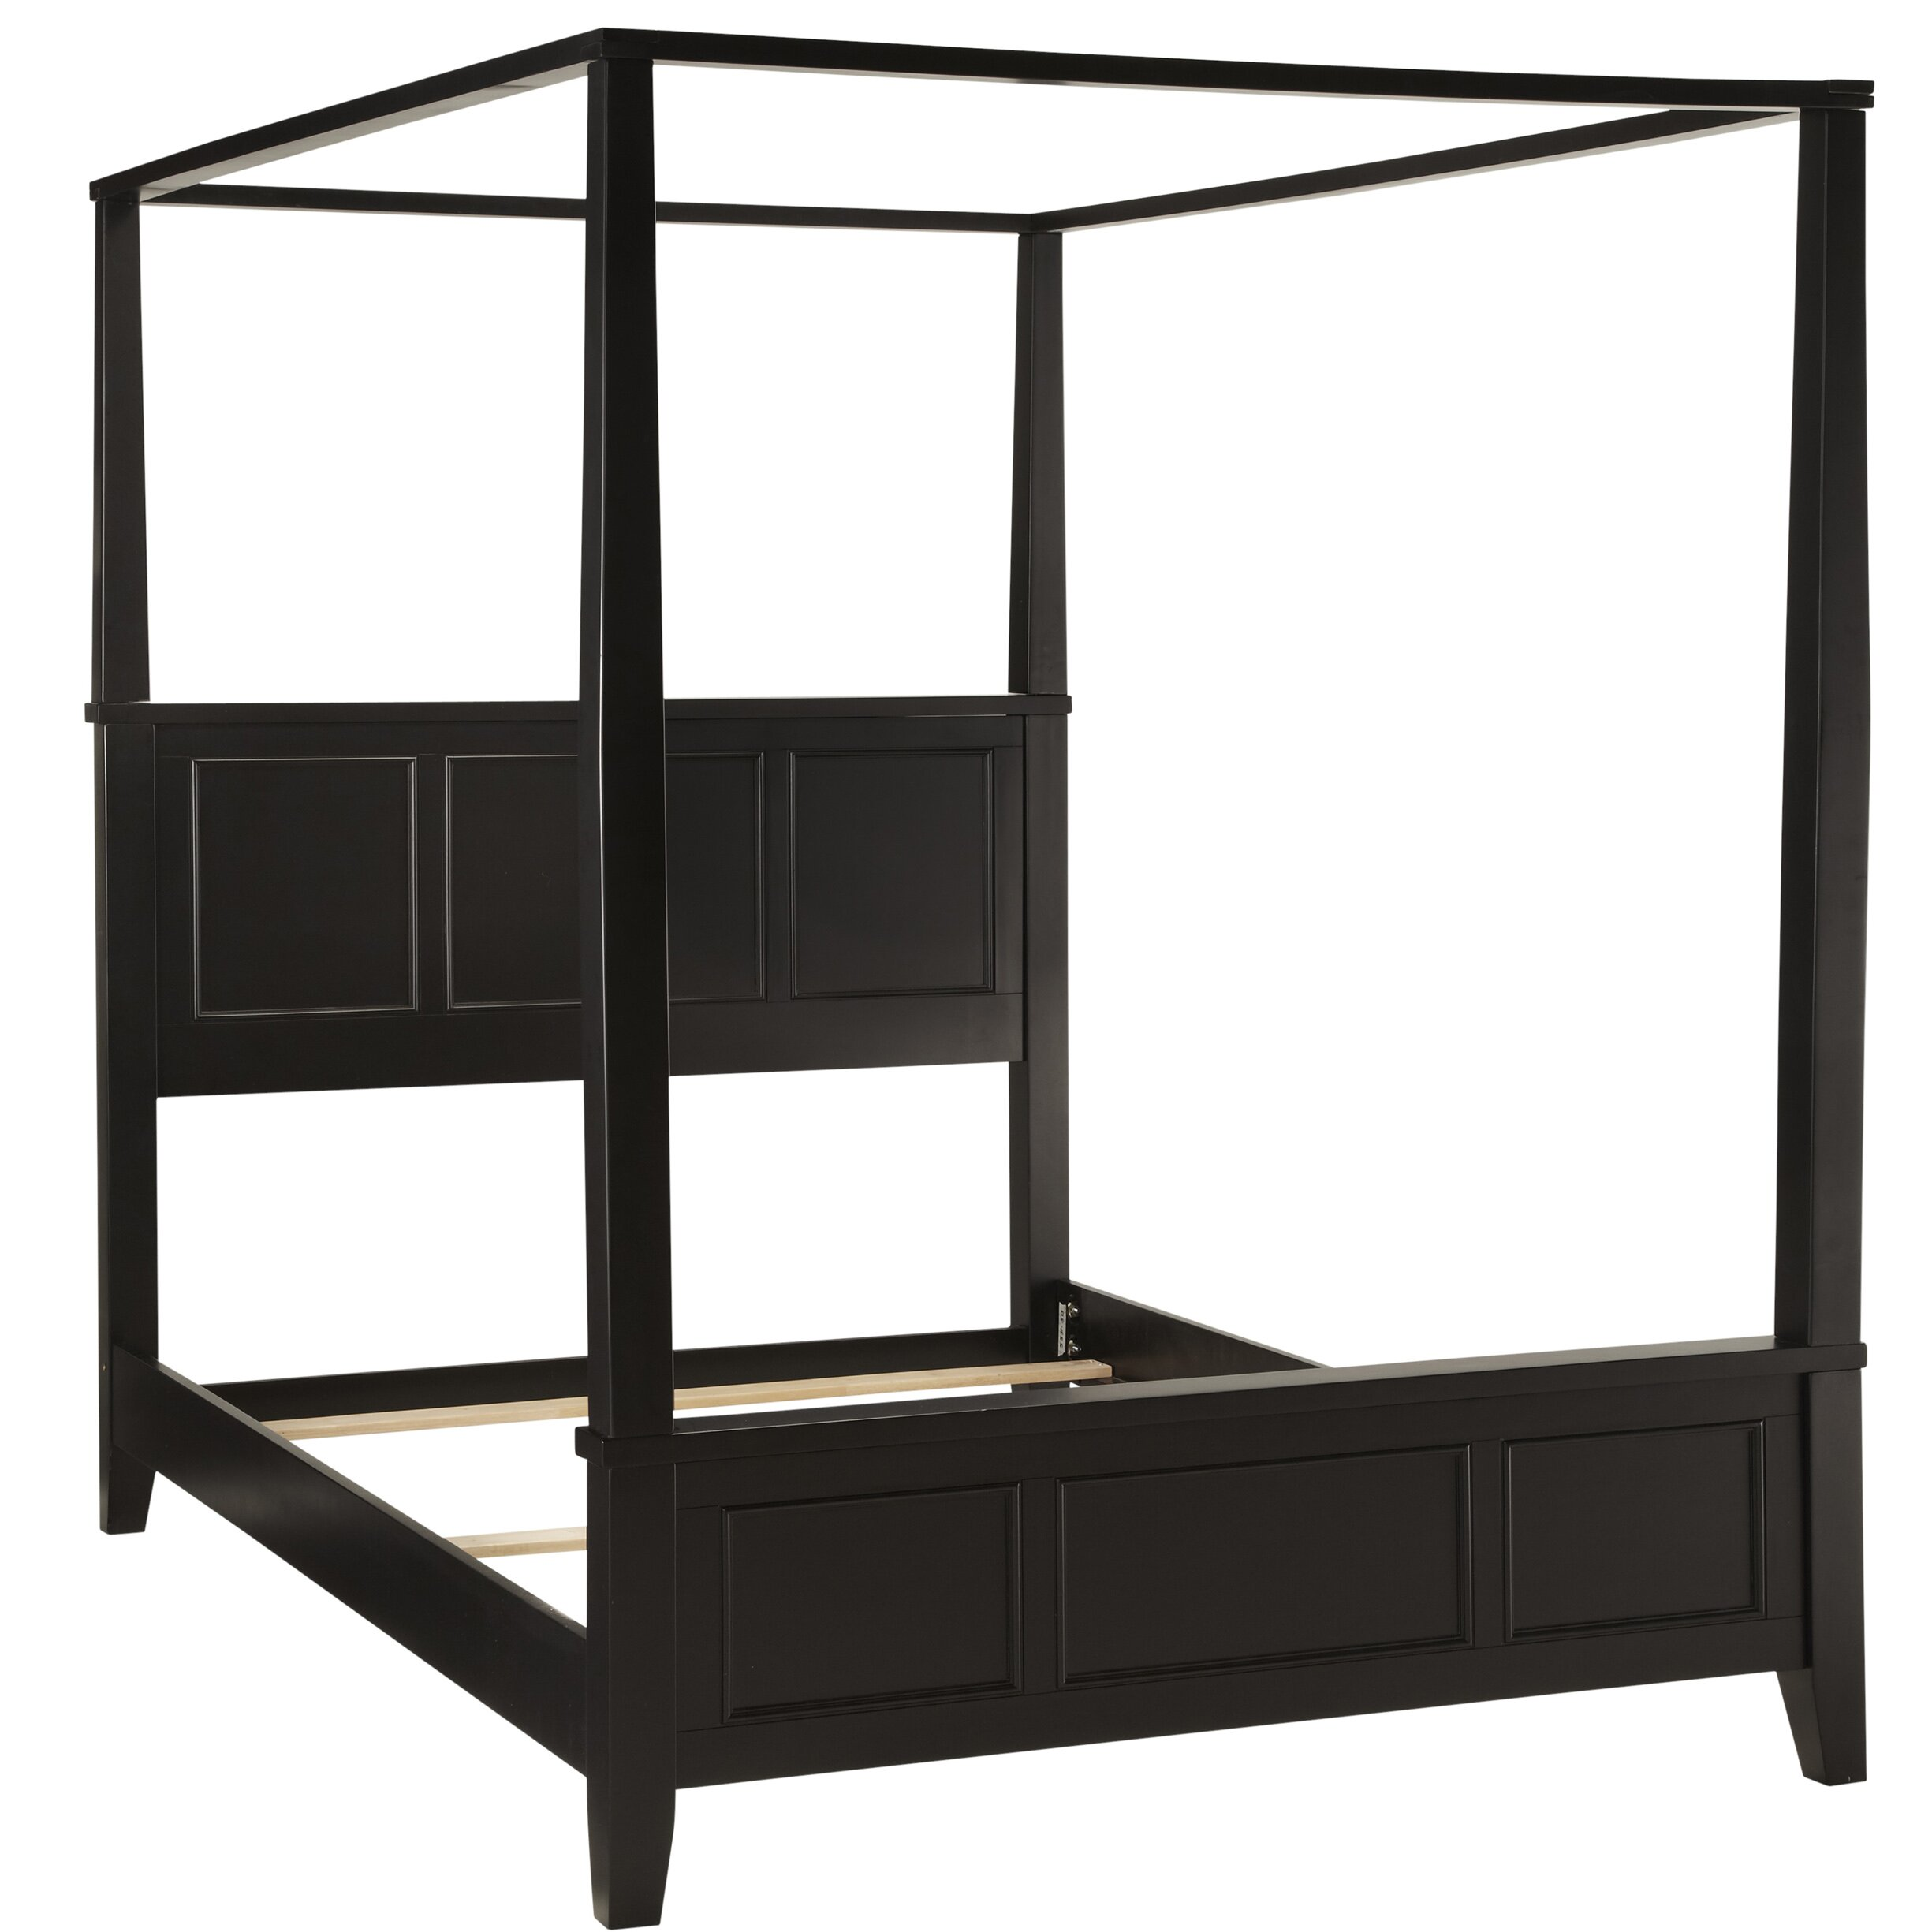 home styles bedford canopy 2 piece bedroom set reviews wayfair. Black Bedroom Furniture Sets. Home Design Ideas